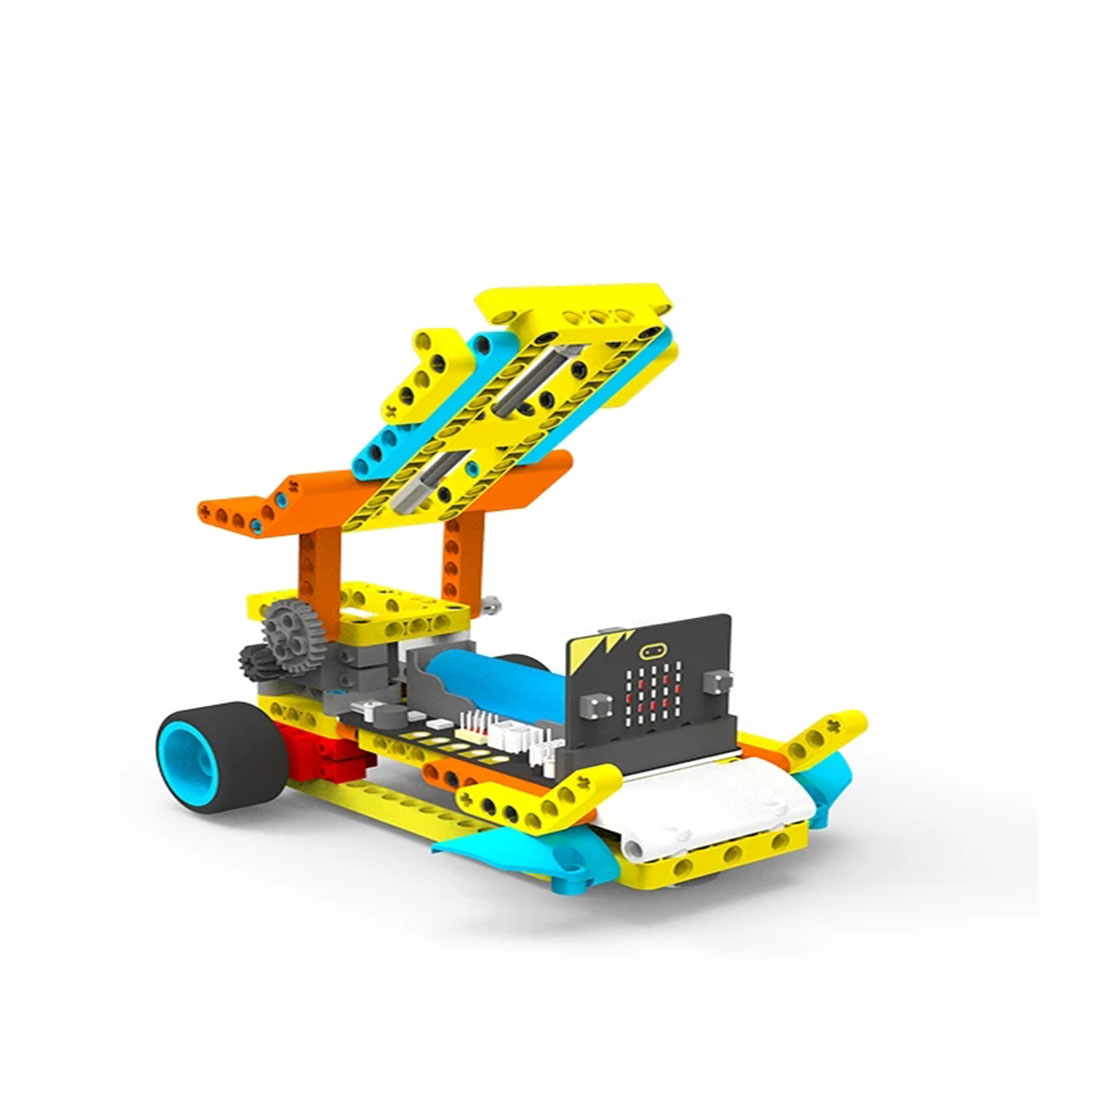 Programmable Intelligent Robot Building Block Car Kit Various Shapes Steam Education Car for Micro:bit(Include Micro:bit Board) 2